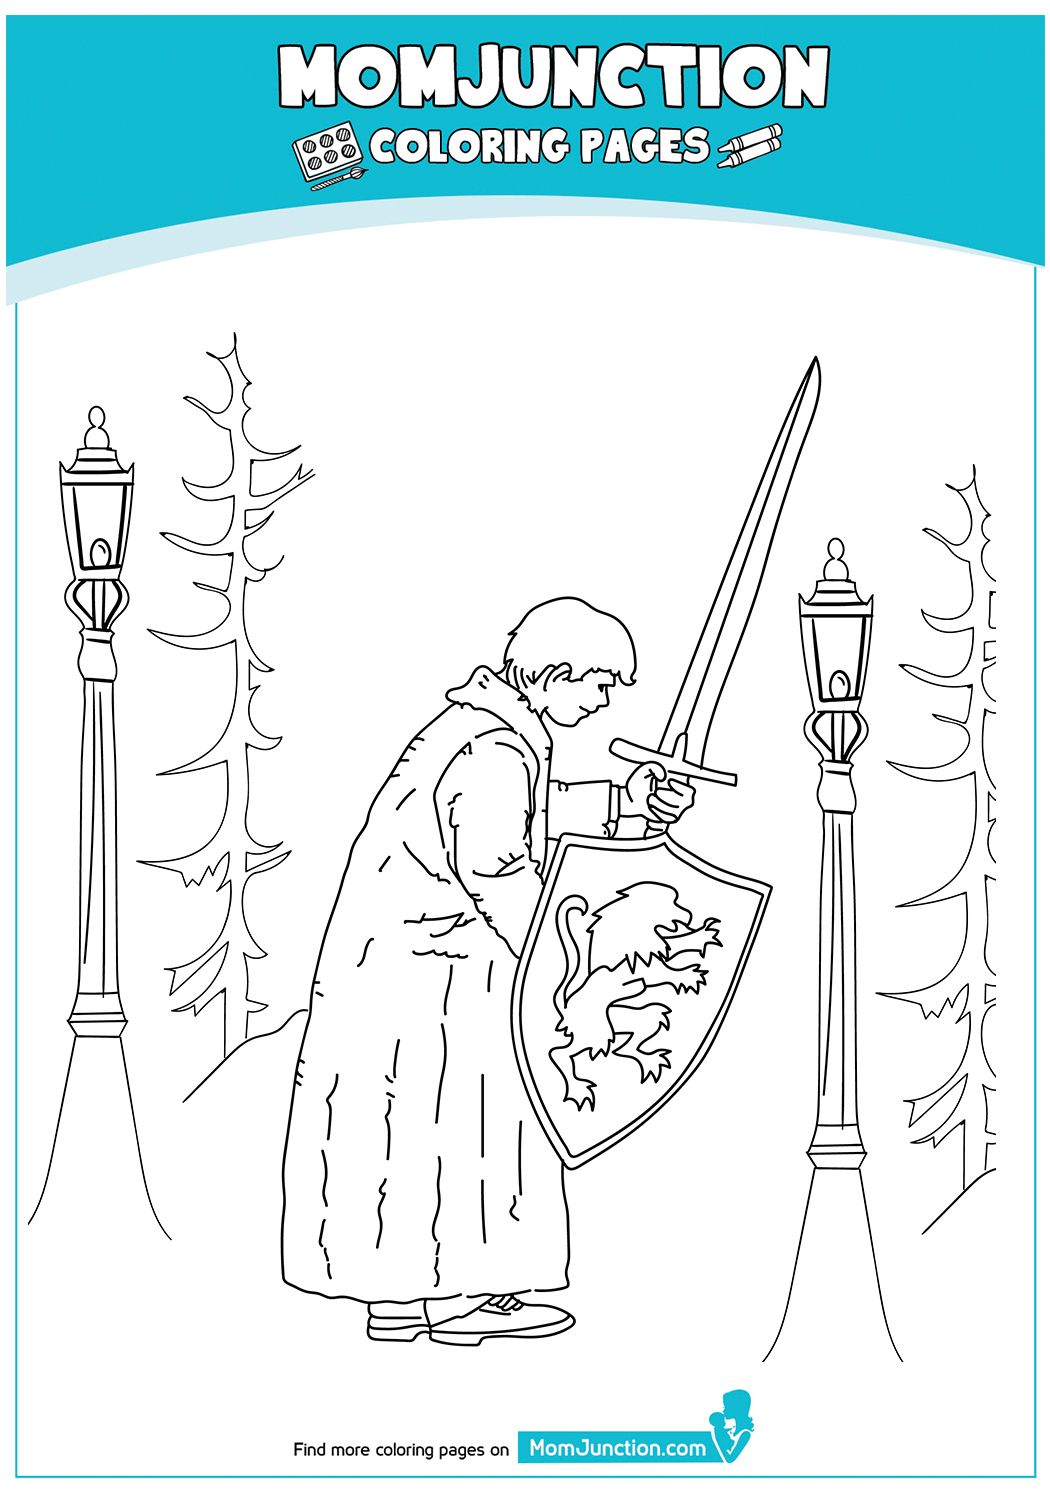 PeterPevensie17 Mom junction, Coloring pages